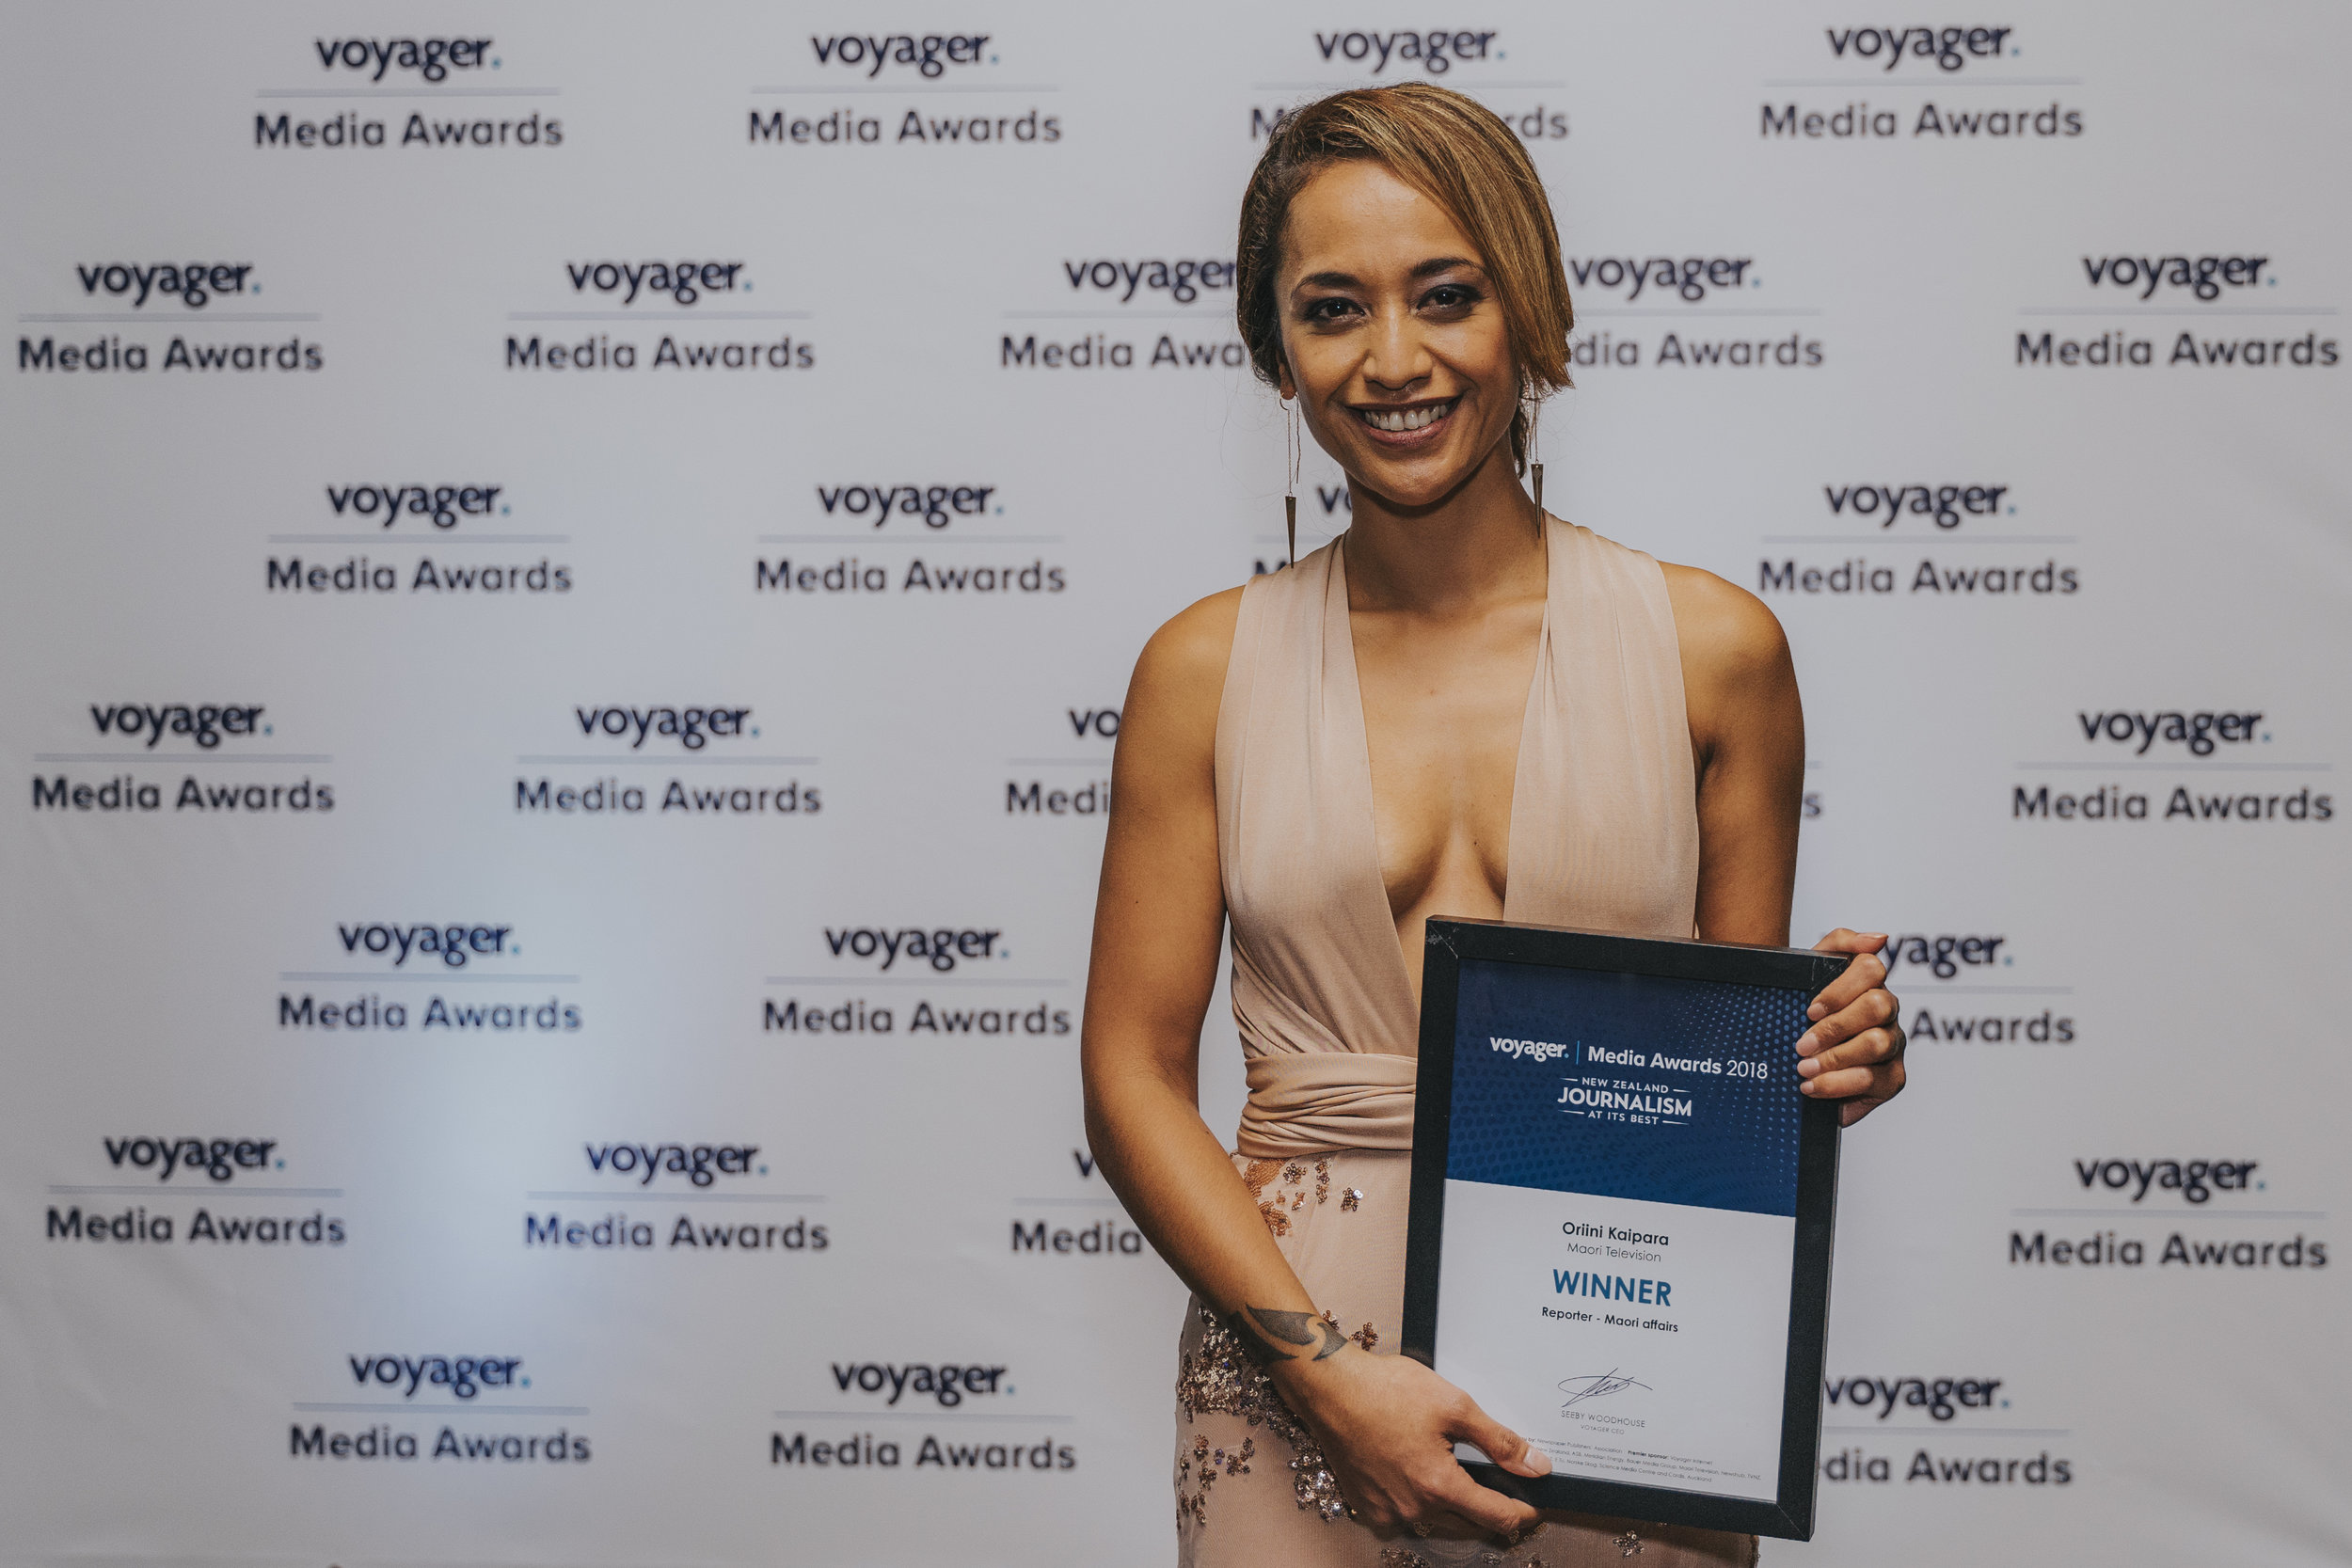 Voyager Media Awards 2018-269.JPG